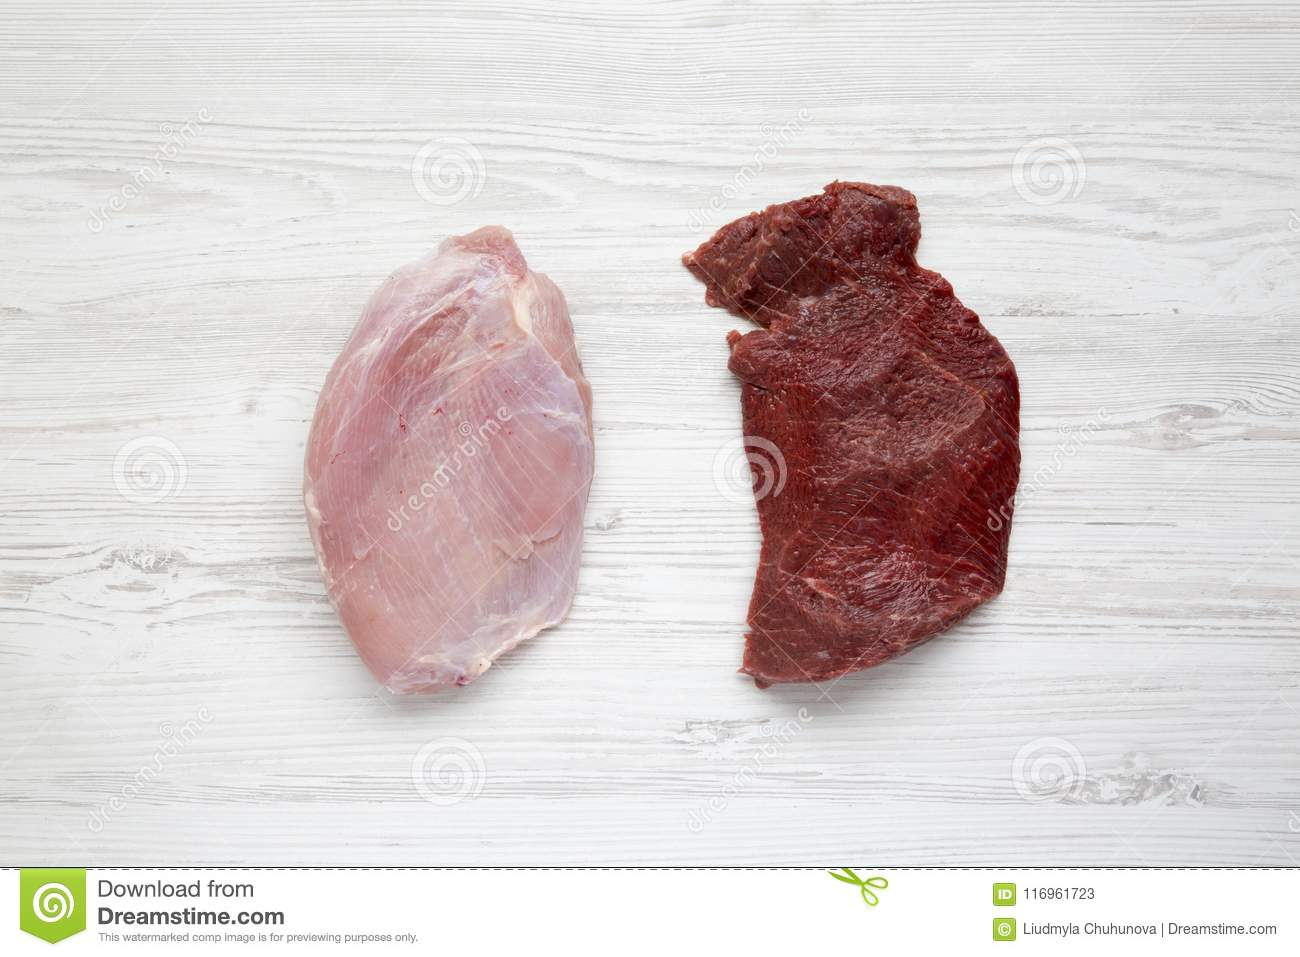 Uncooked raw beef meat and turkey breast on white wooden background, top view. Flat lay.